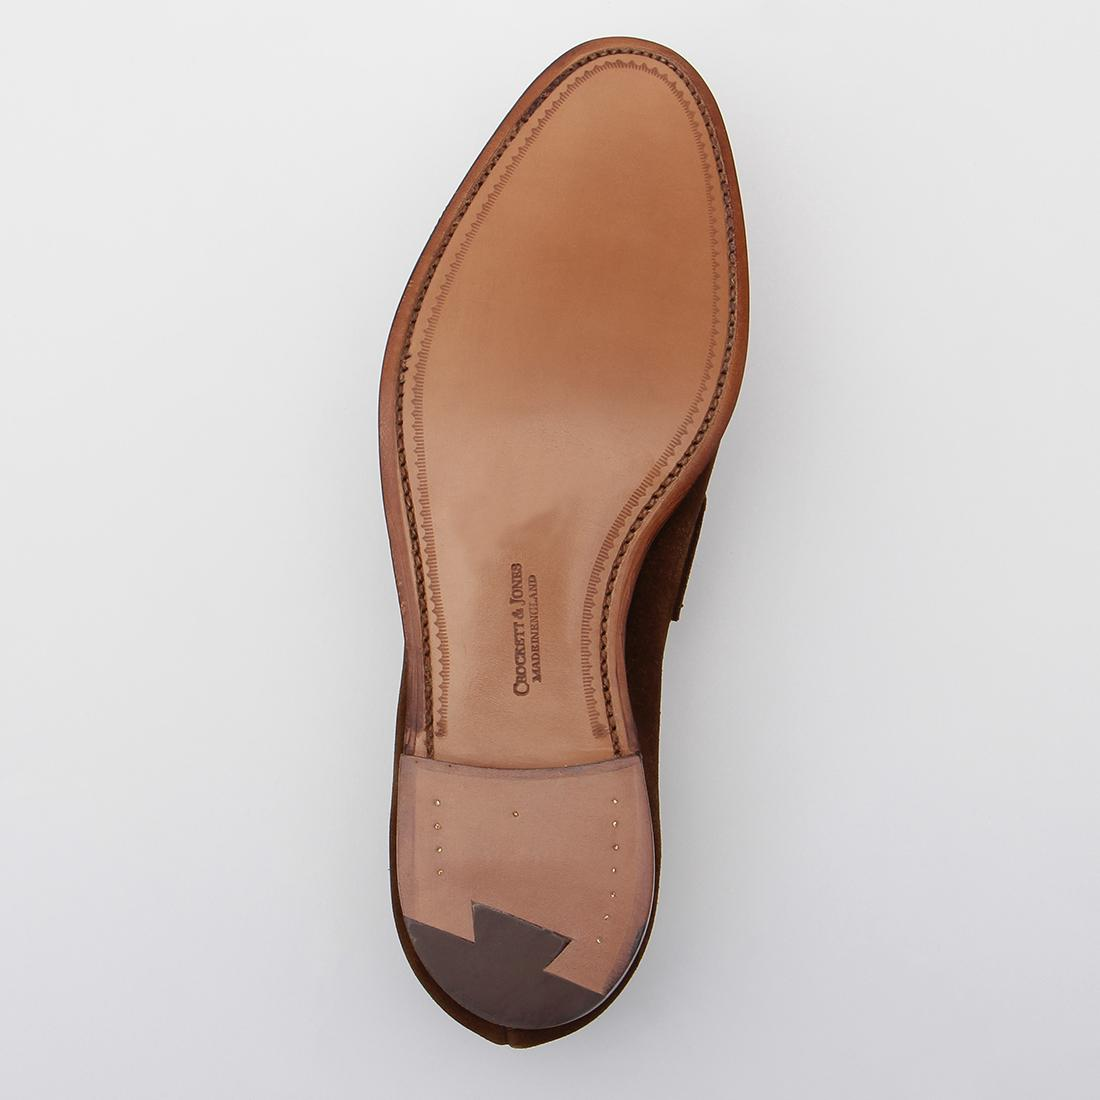 Sydney: Leather Sole